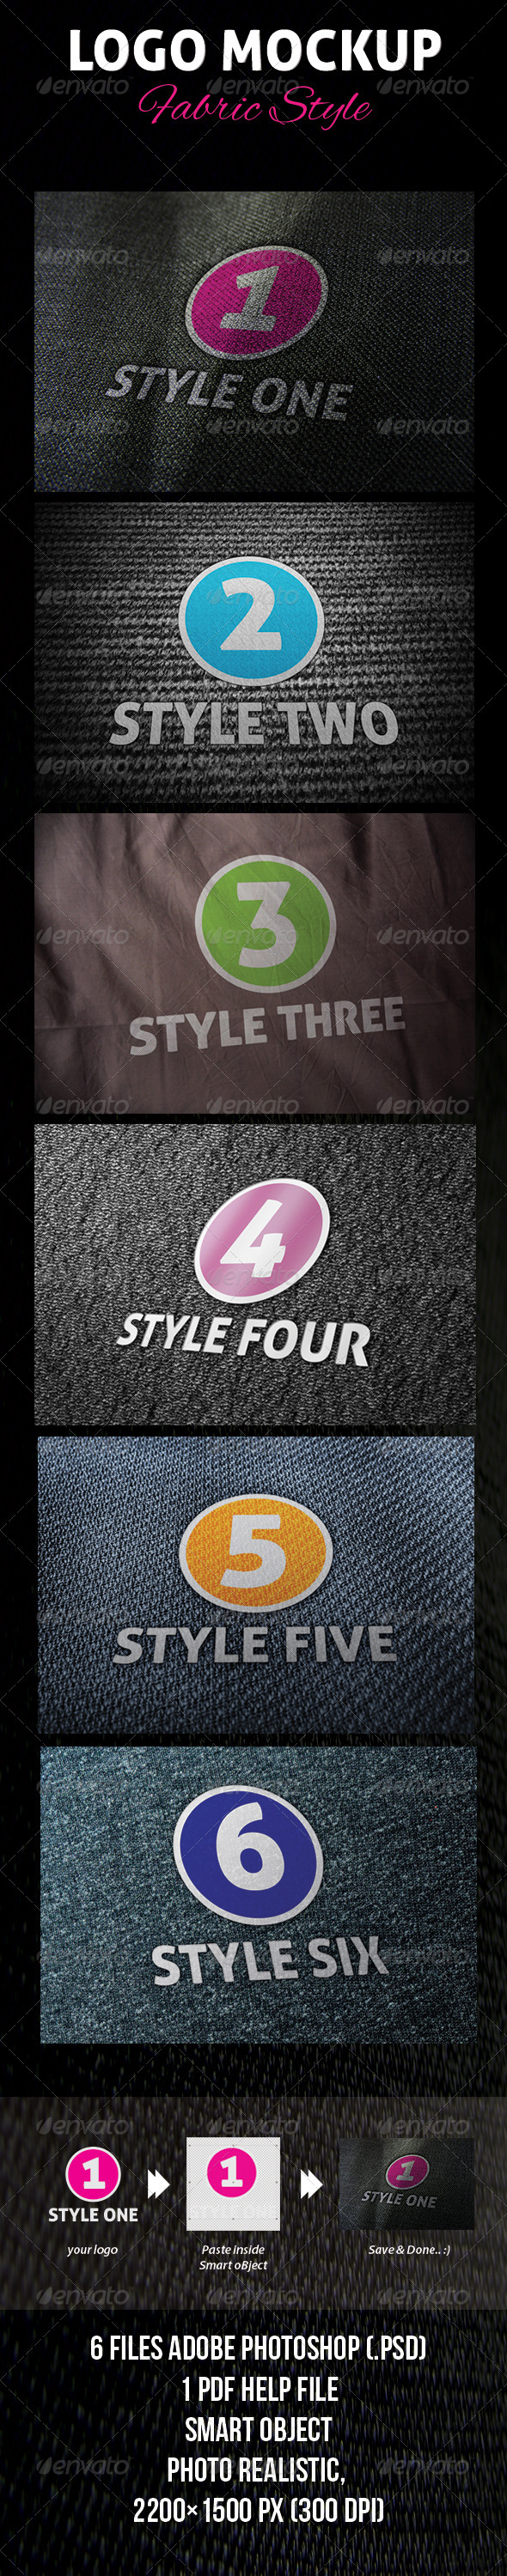 GraphicRiver Logo Mockup Fabric Style 4494972